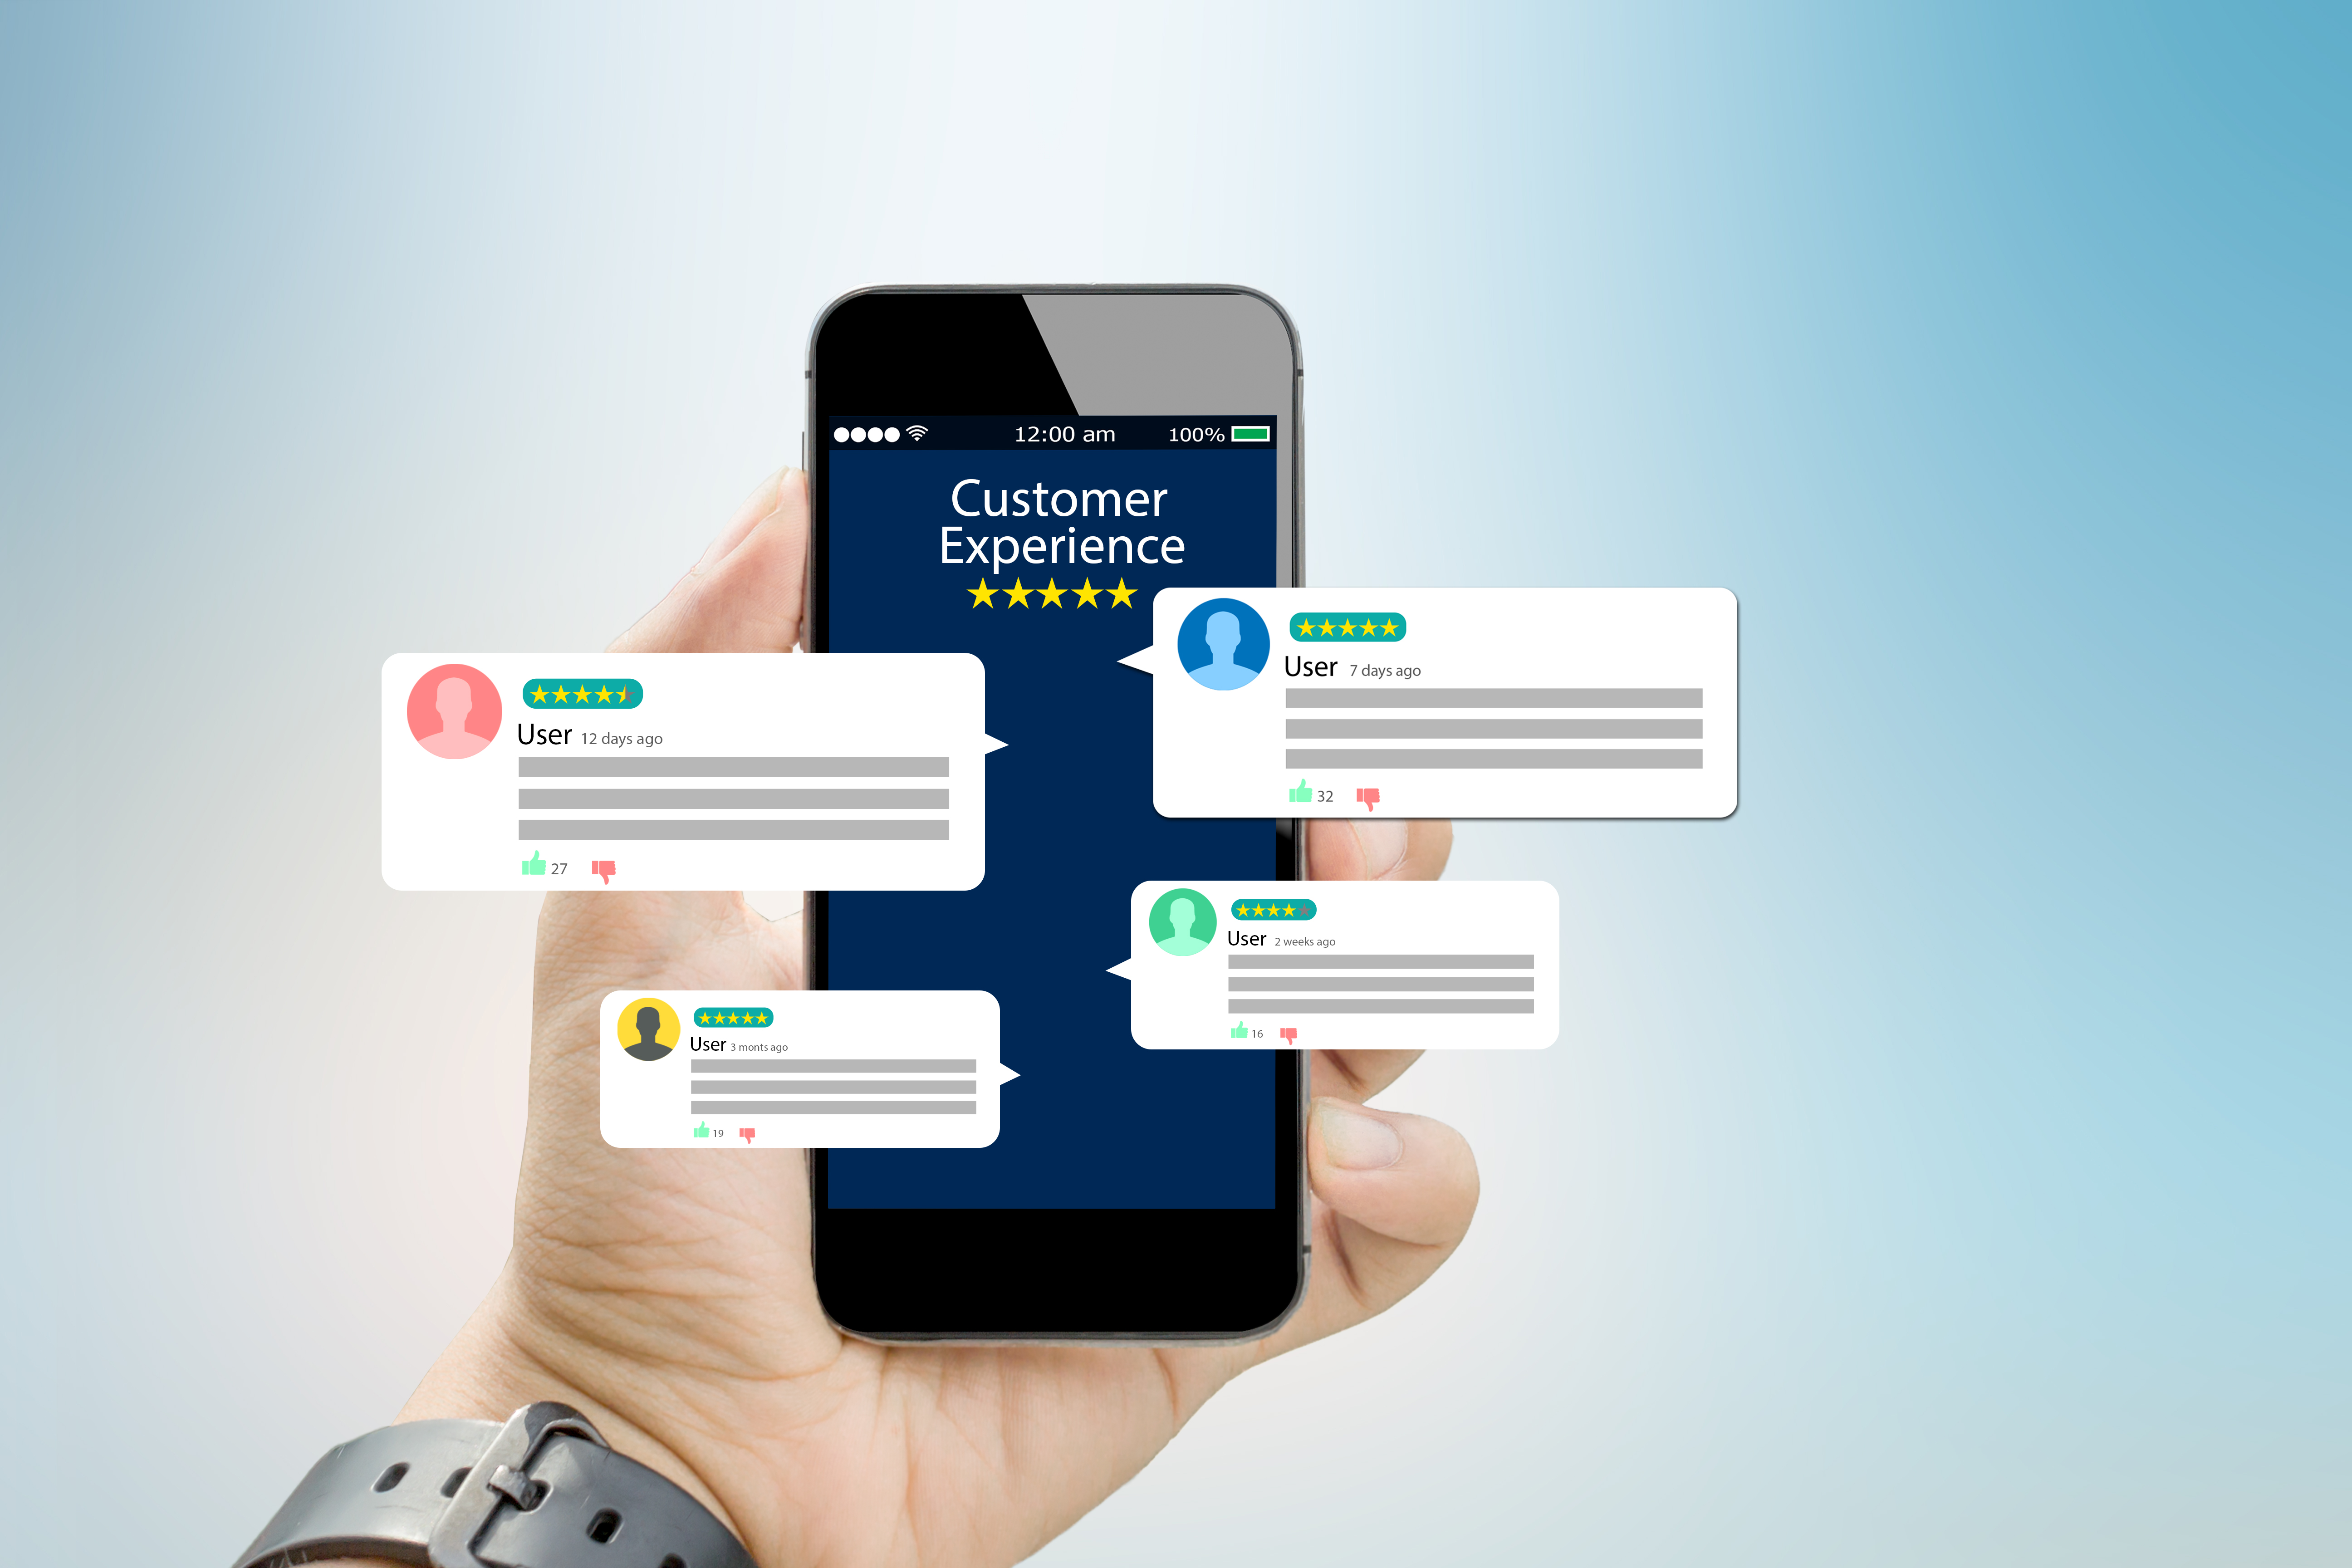 customer-experience-review-concept-hands-holding-mobile-phone